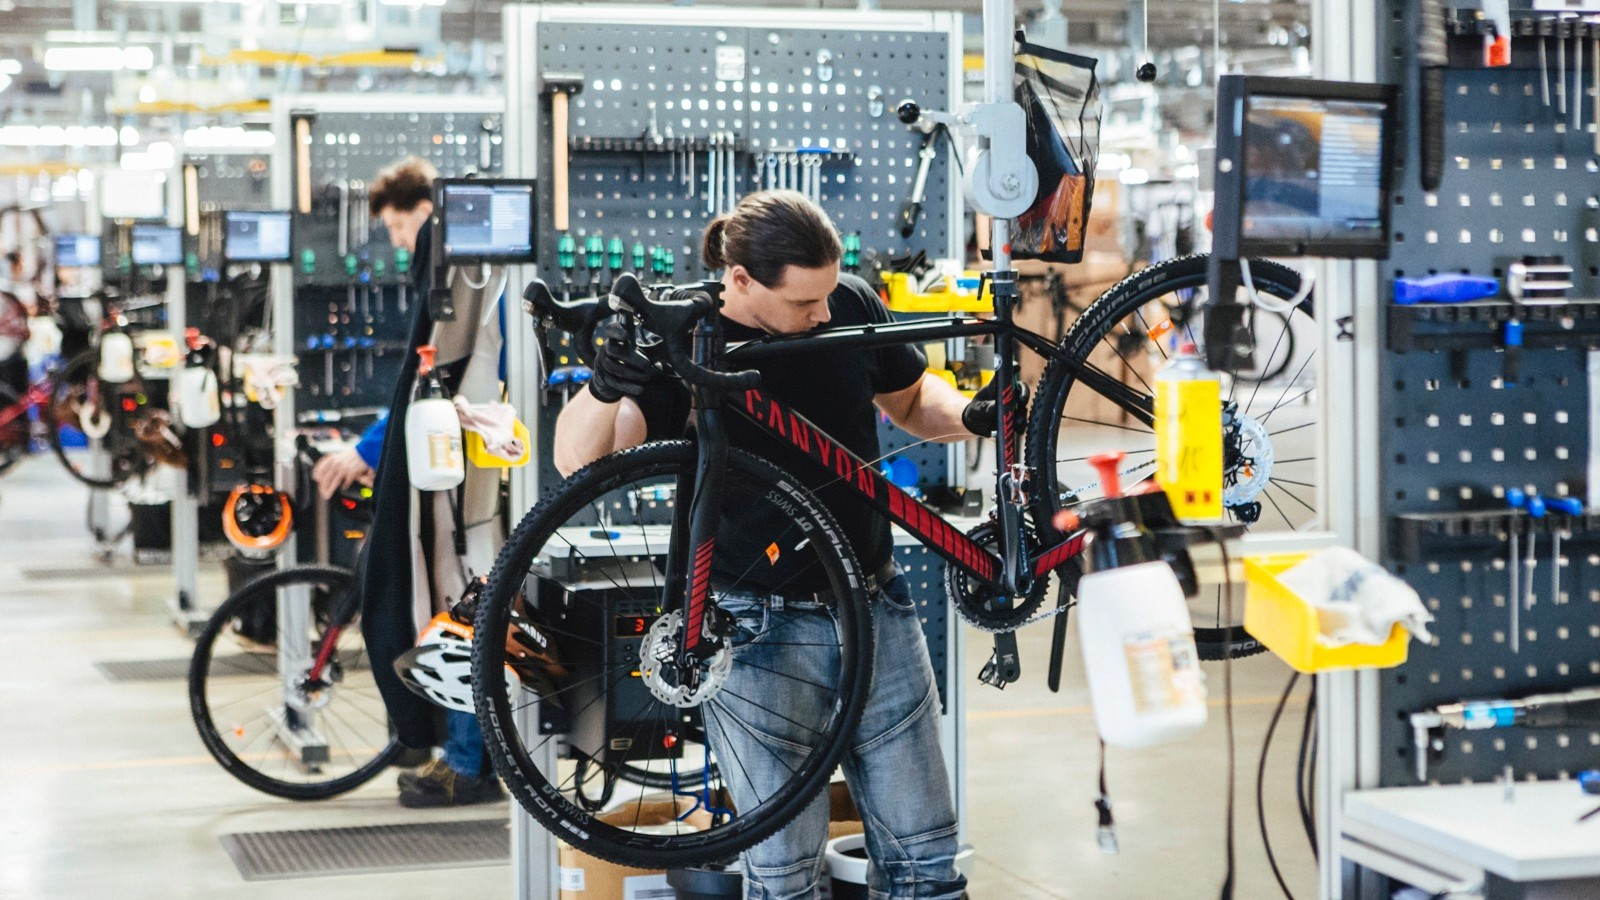 The bikes spend around 60 seconds at each assembly bay